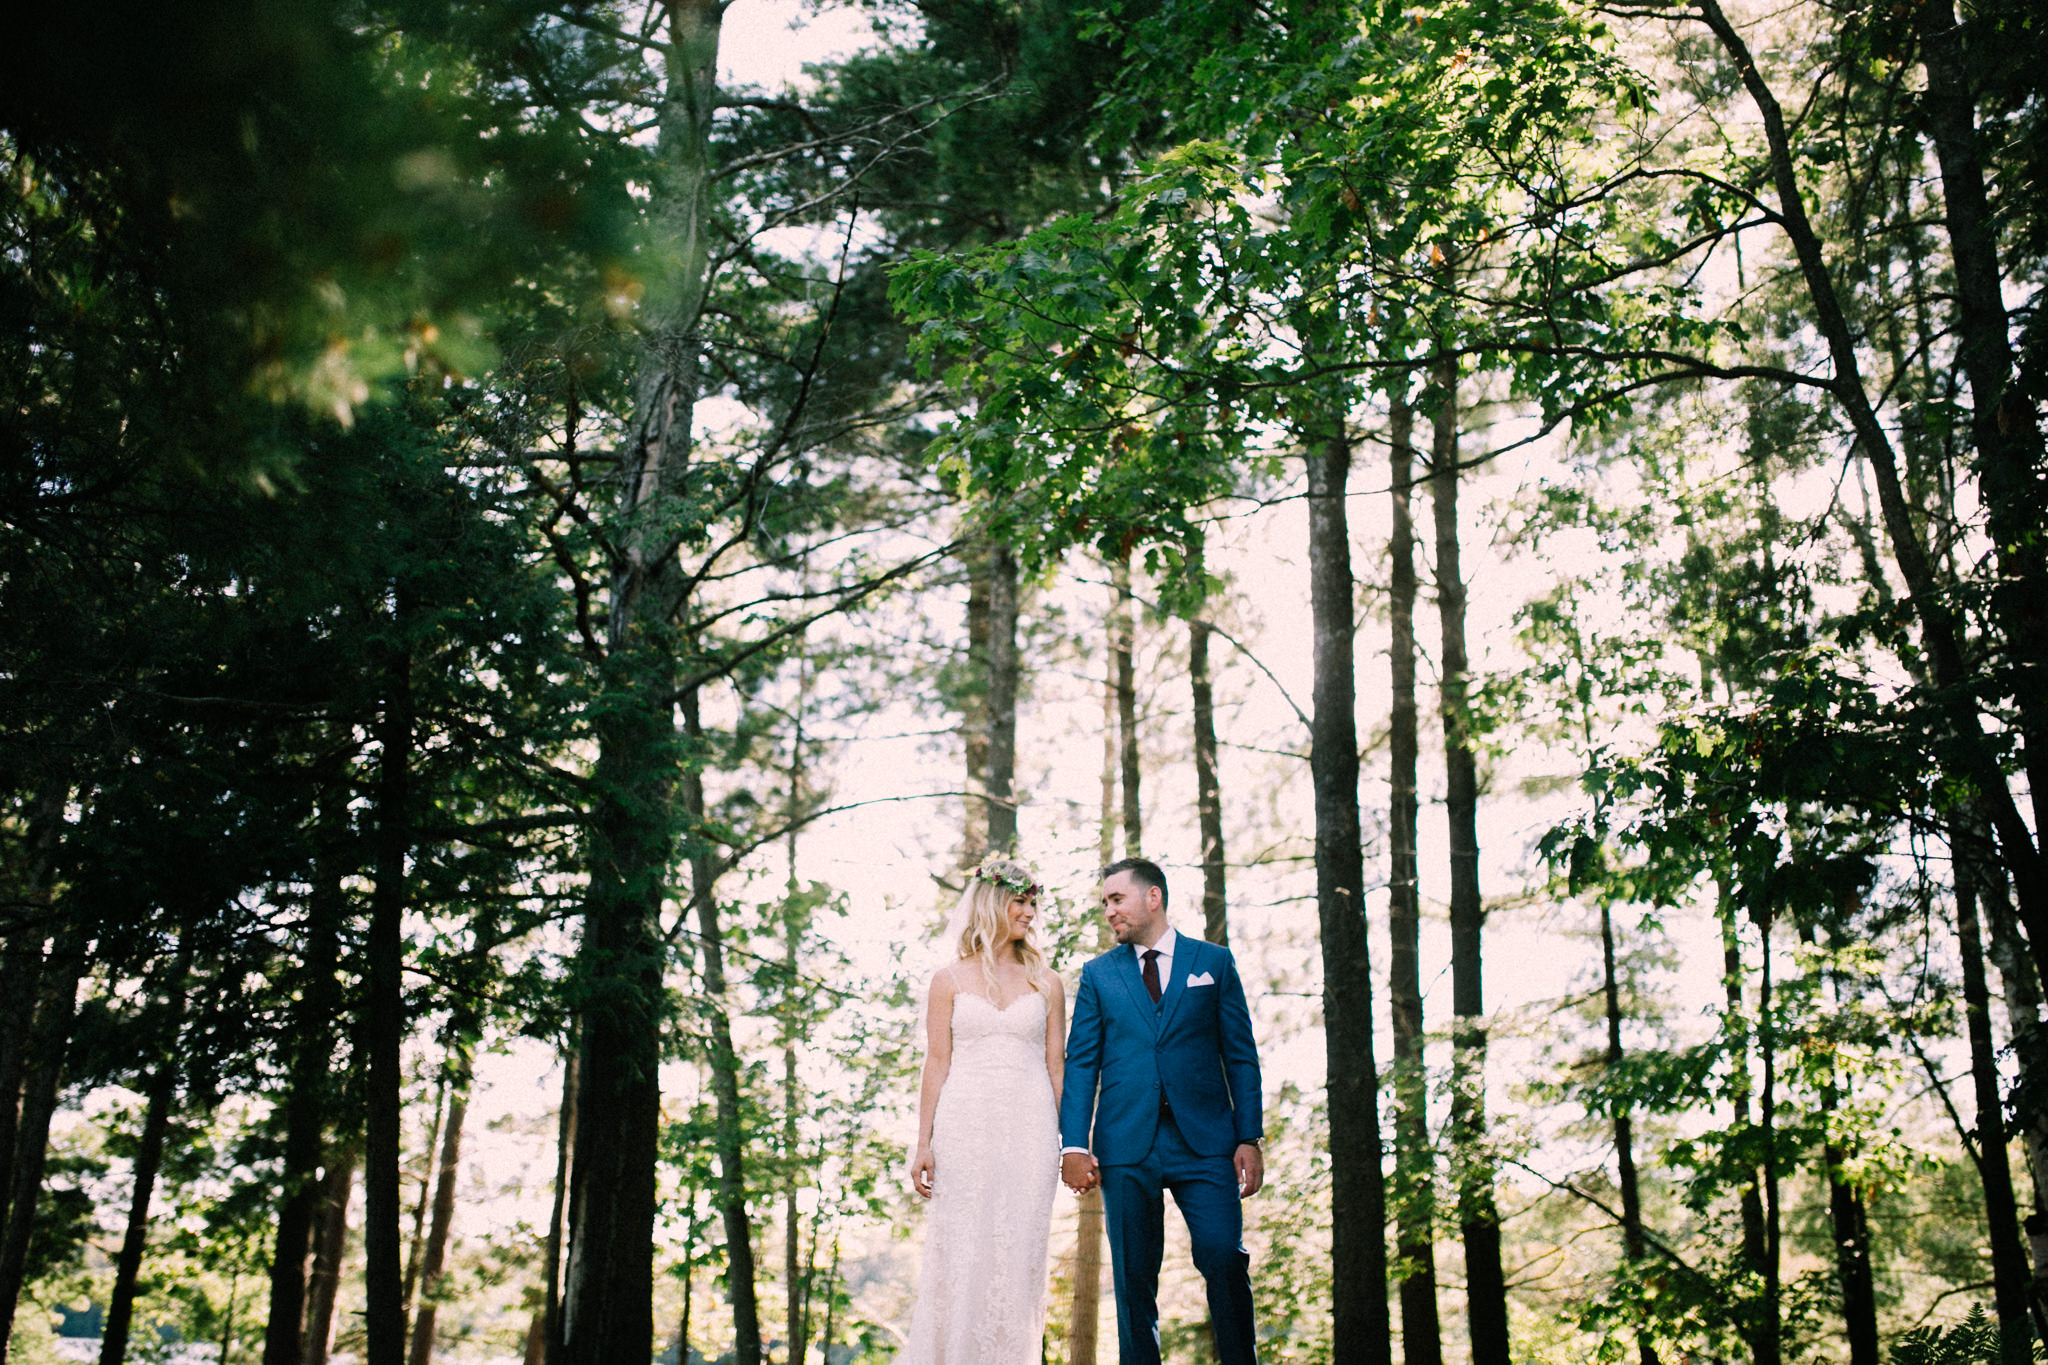 Muskoka lakeside wedding at Port Cunnington Lodge by Max Wong Photo (21)